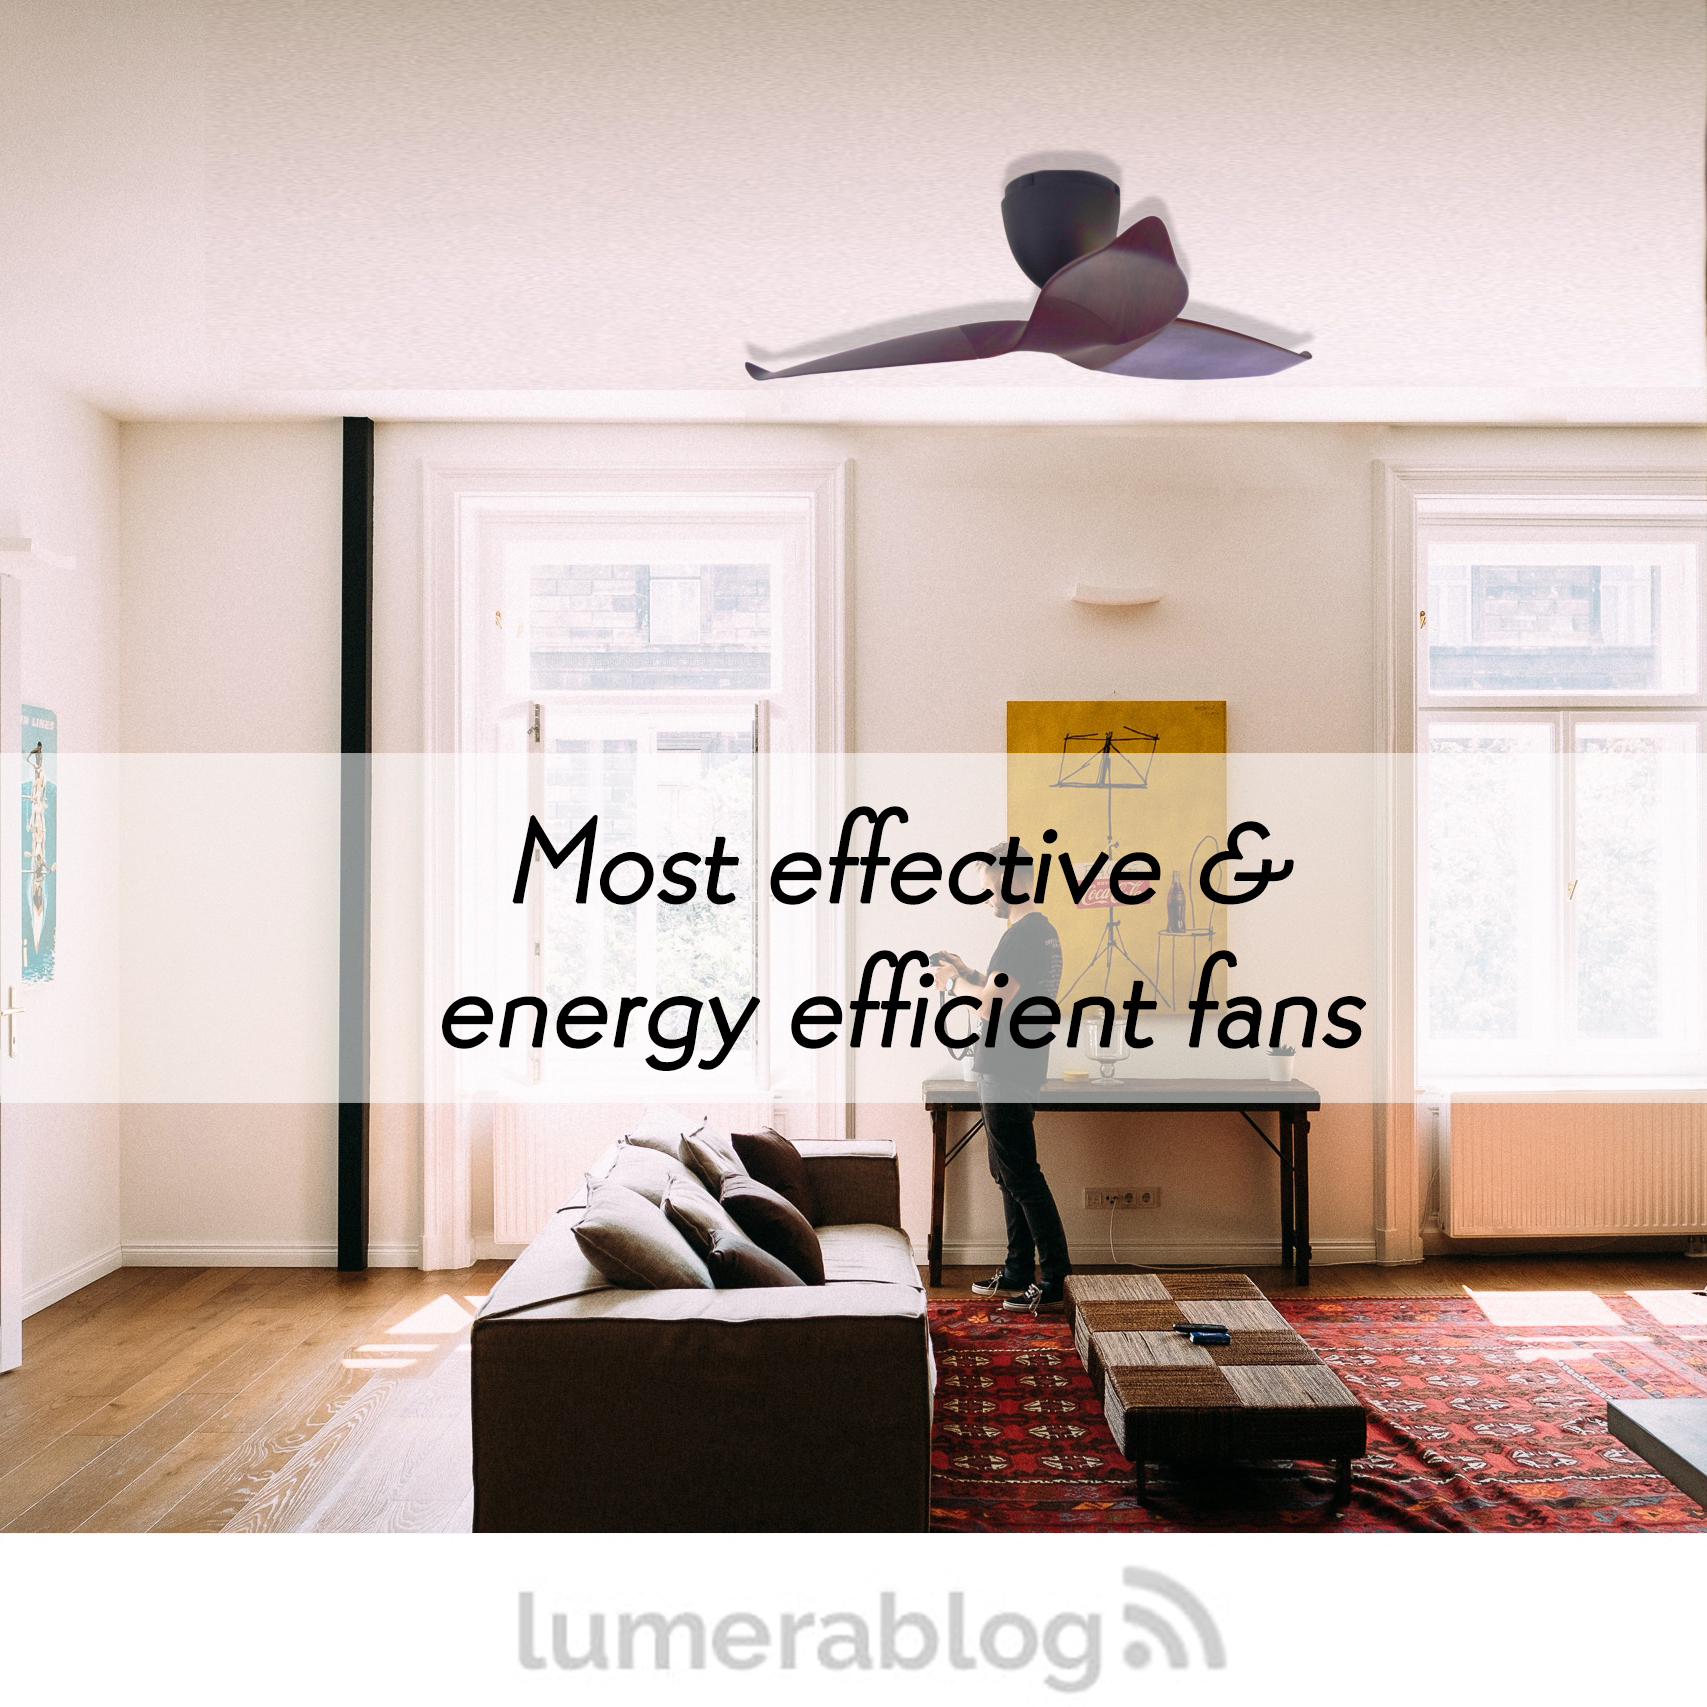 All Ceiling Fans Are Considered To Be Extremely Energy Efficient Although Of Course Some Slightly More That Others